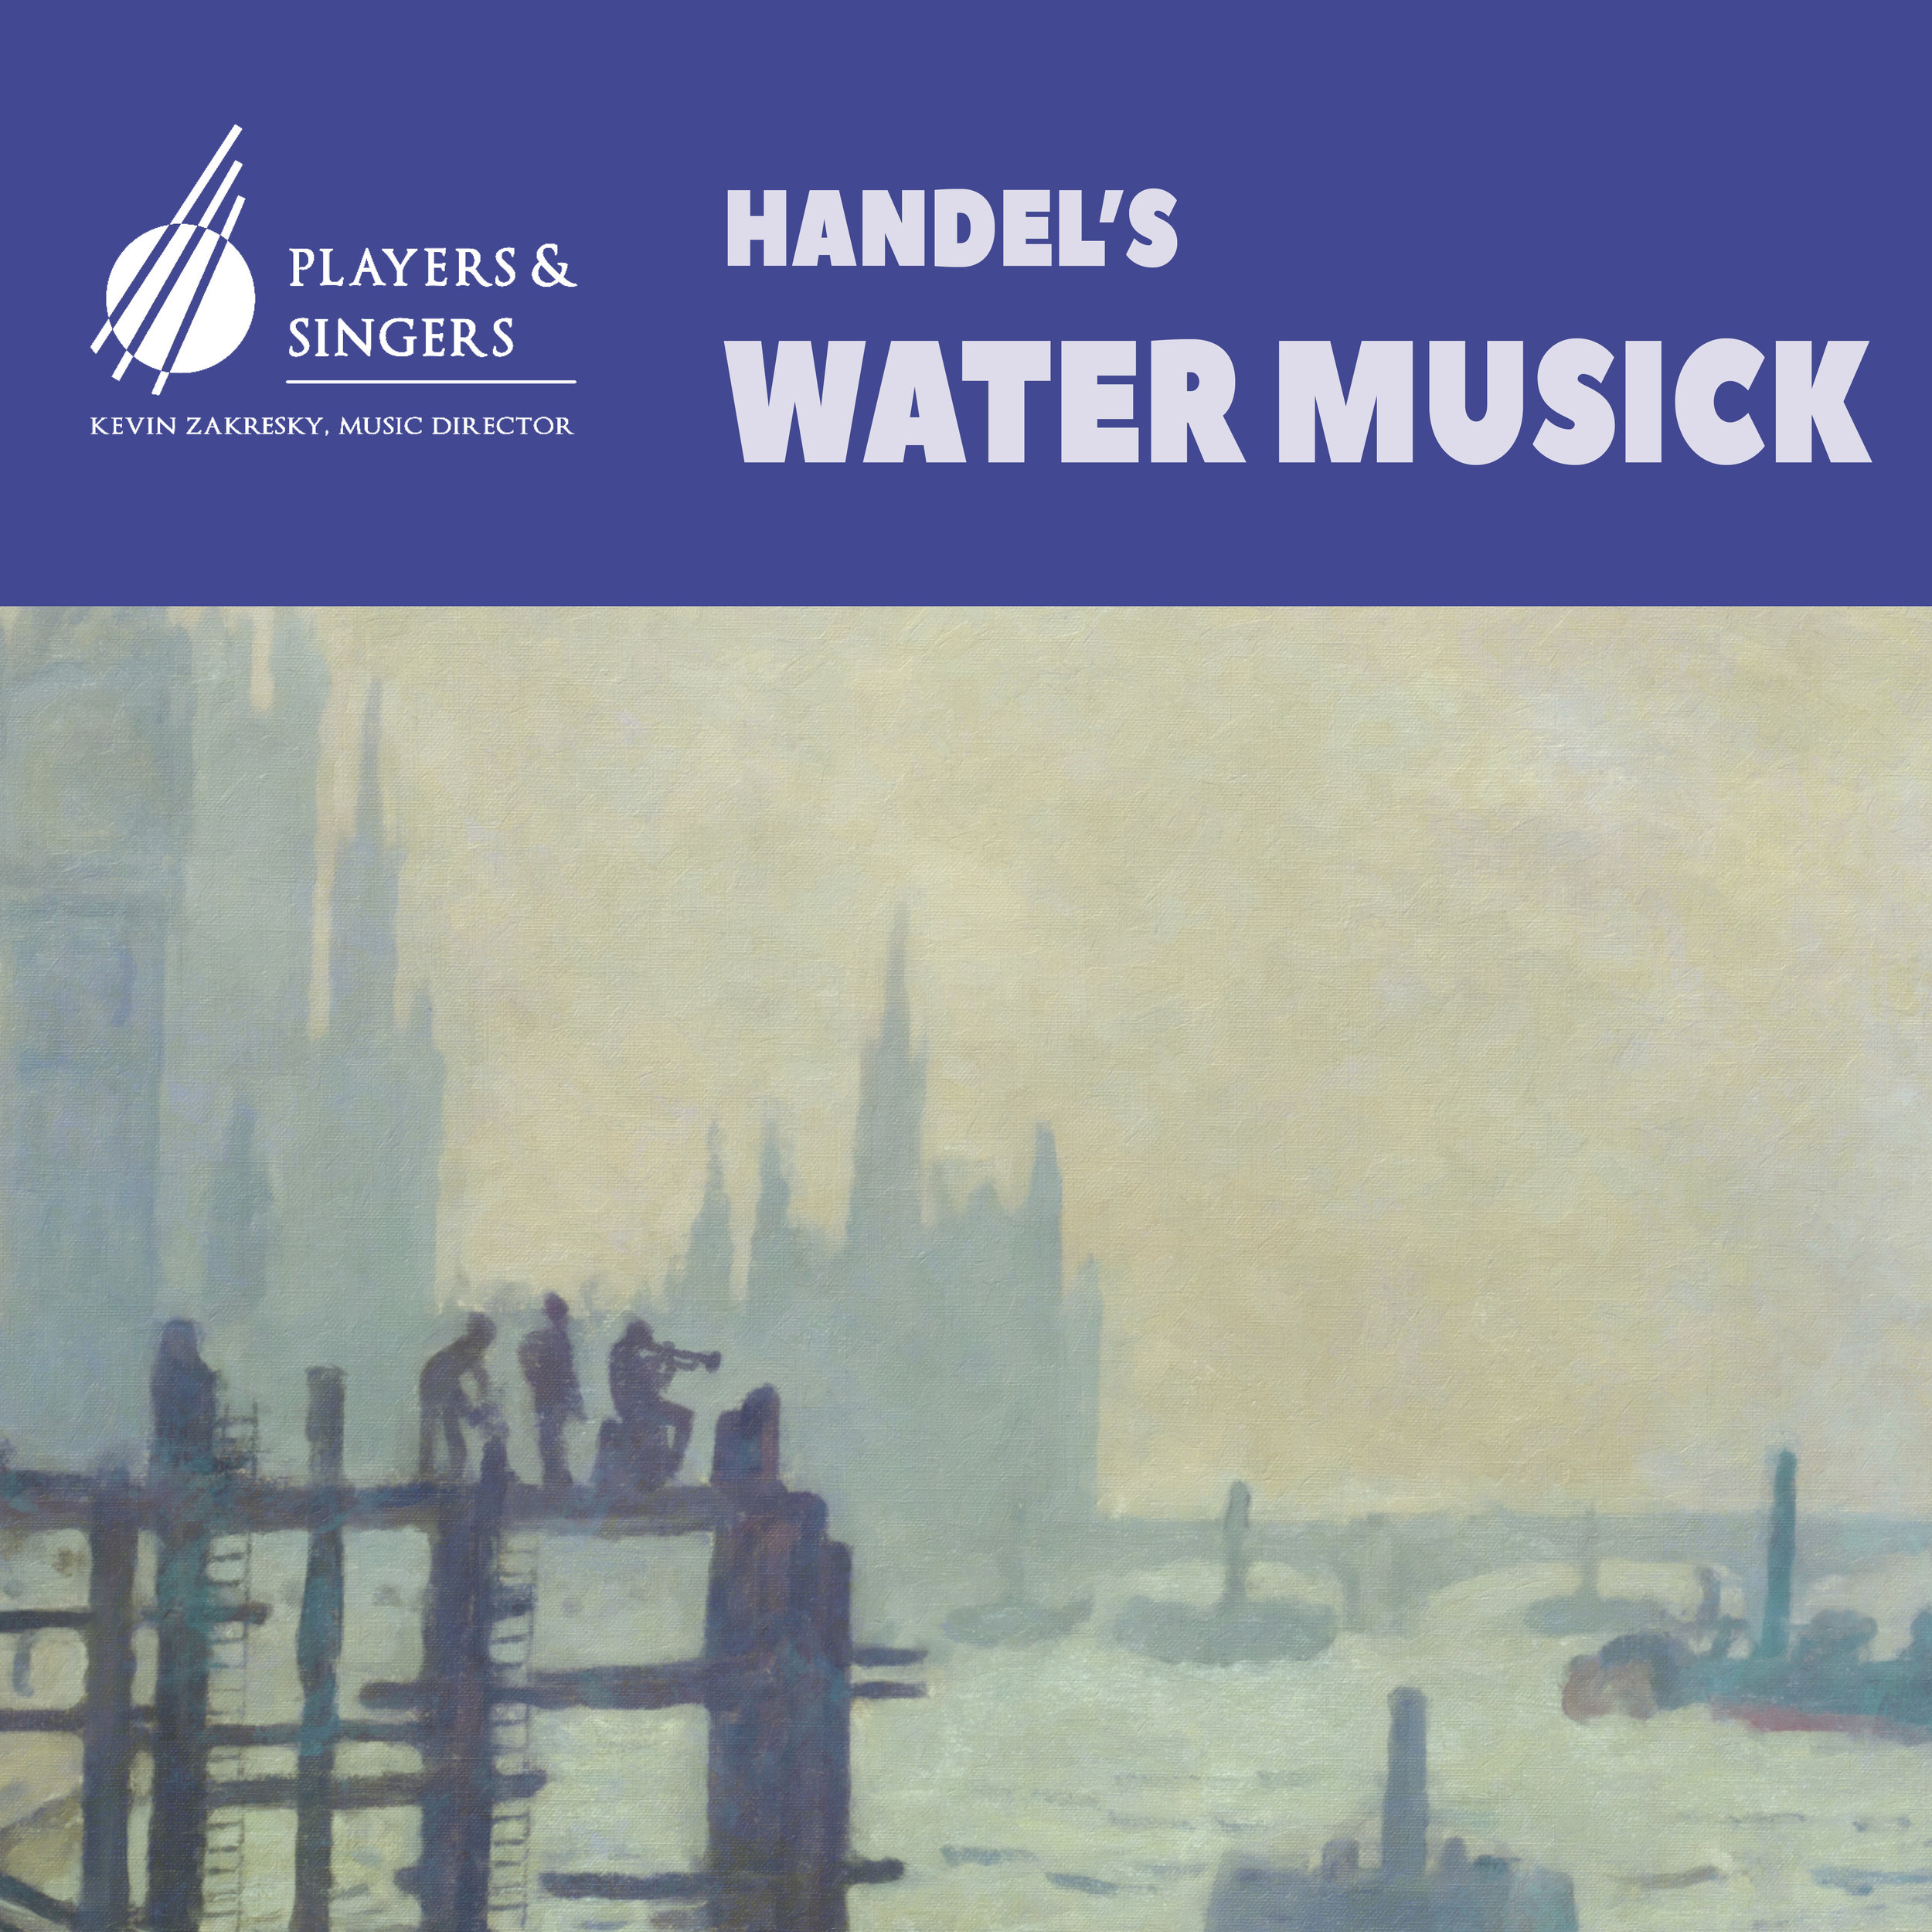 Handel's Water Musick - Saturday, February 15 - 3pm & 8pmFeaturing two of Handel's most treasured works.First his exquisite choral elegy written for long-time friend and patron Queen Caroline, consort to George II. Second his most famous instrumental work, written for one of the most incredible musical spectacles of Handel's career. In 1717 King George requested a royal concert on the river, and, as the King's barge floated from Whitehall to Chelsea, 50 musicians played a collection of pieces that would become the most famous suite in Classical music history.